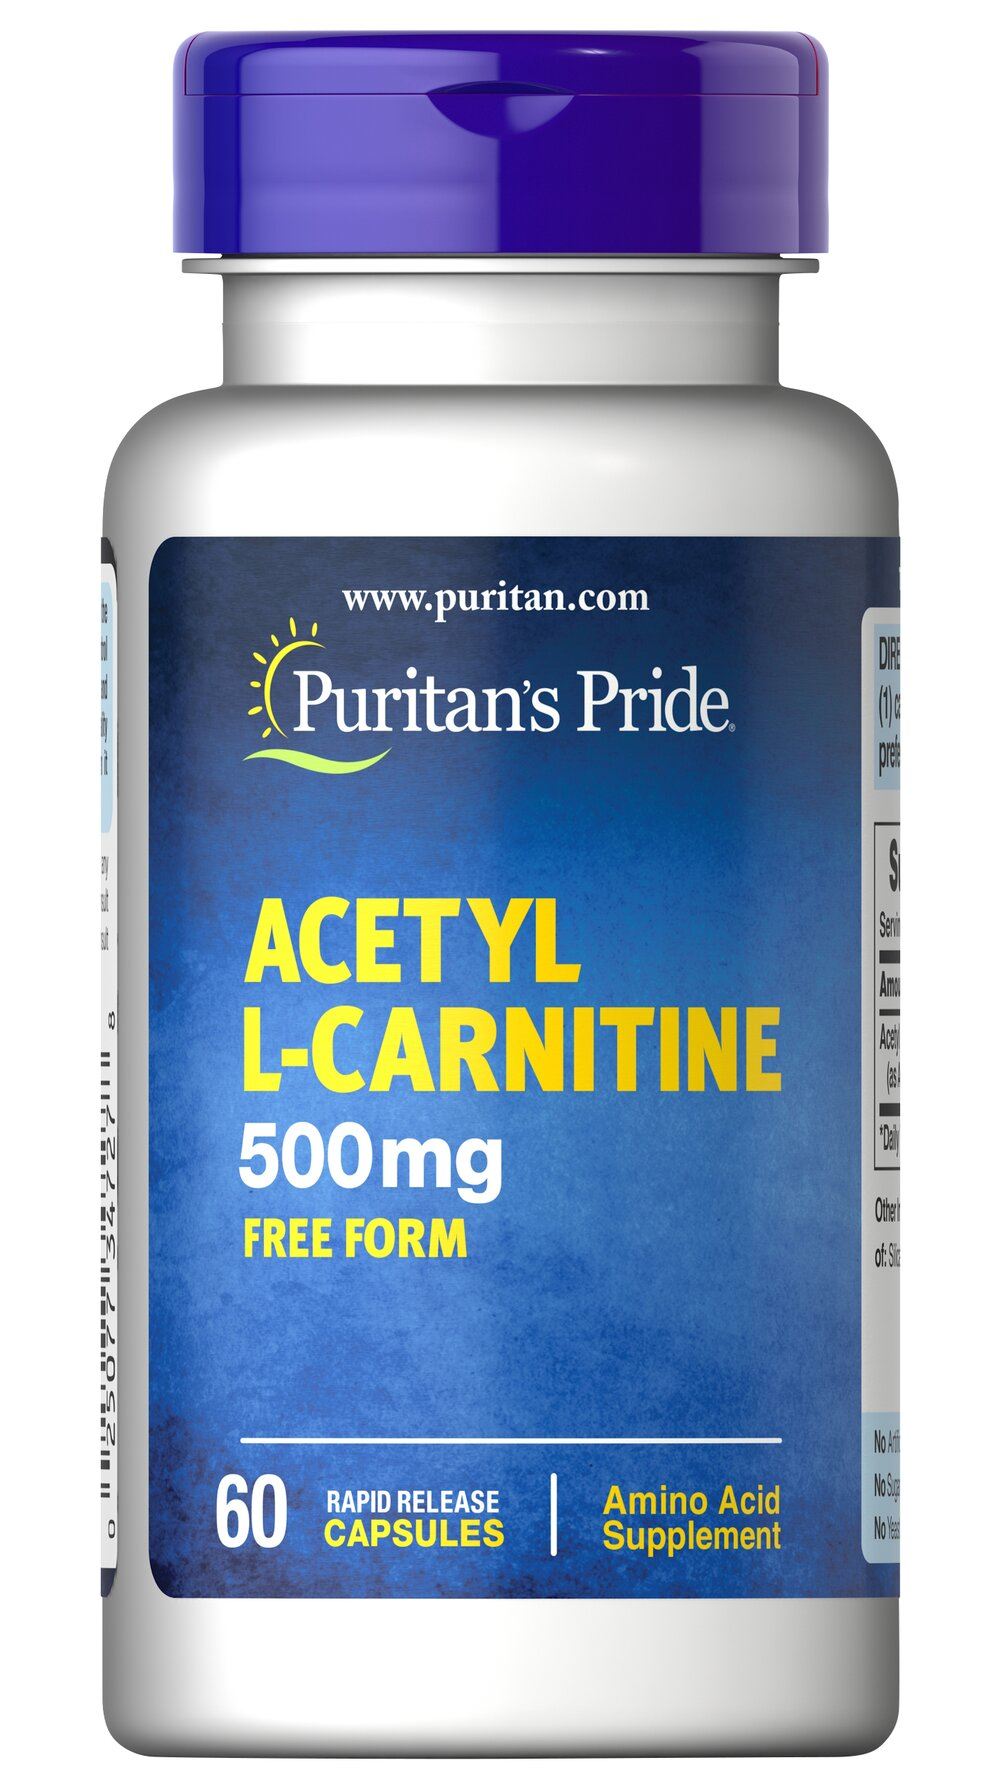 Acetyl L-Carnitine 500 mg <p>Acetyl L-Carnitine plays a role in the metabolism of food to energy.** Studies indicate that the combination of Alpha Lipoic Acid and Acetyl L-Carnitine helps promote metabolic functioning to fight against free radicals and oxidative stress.**</p>  60 Capsules 500 mg $16.99